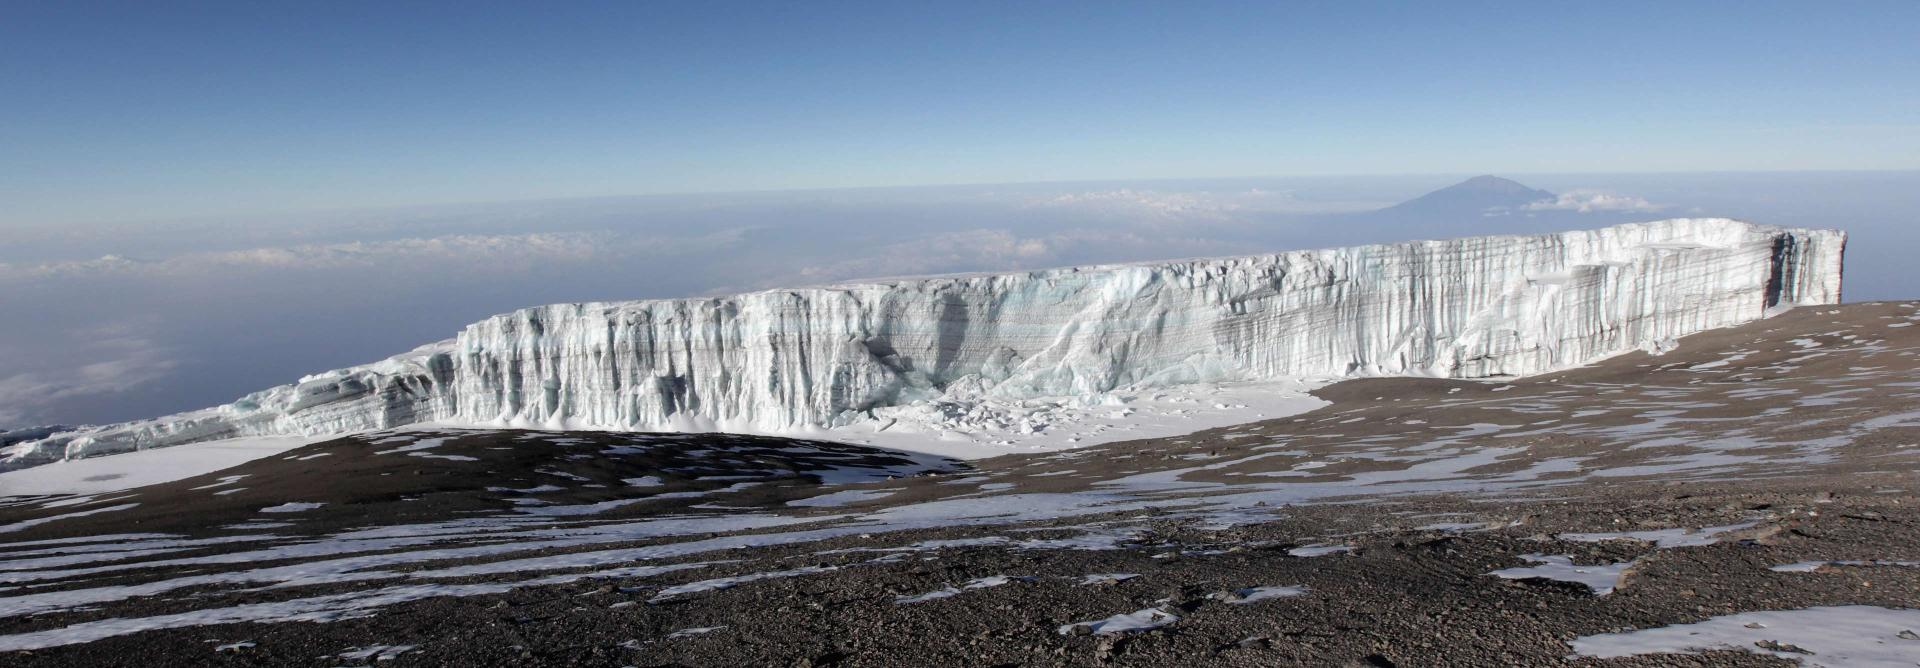 Kilimanjaro North Face Route